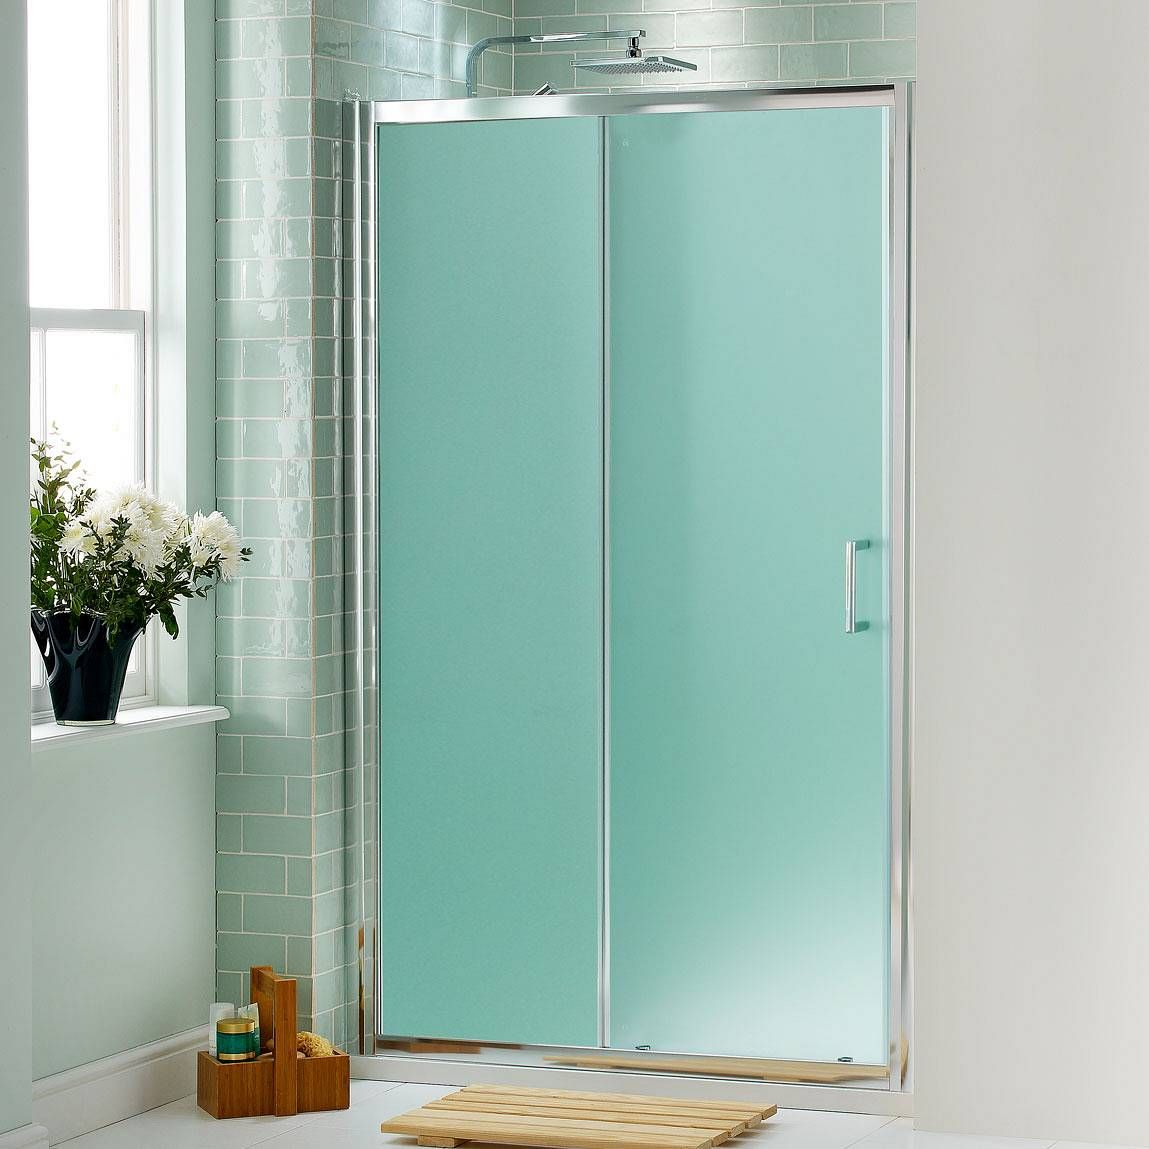 Translucent sliding doors bathroom ideas pinterest for Bathroom entrance doors